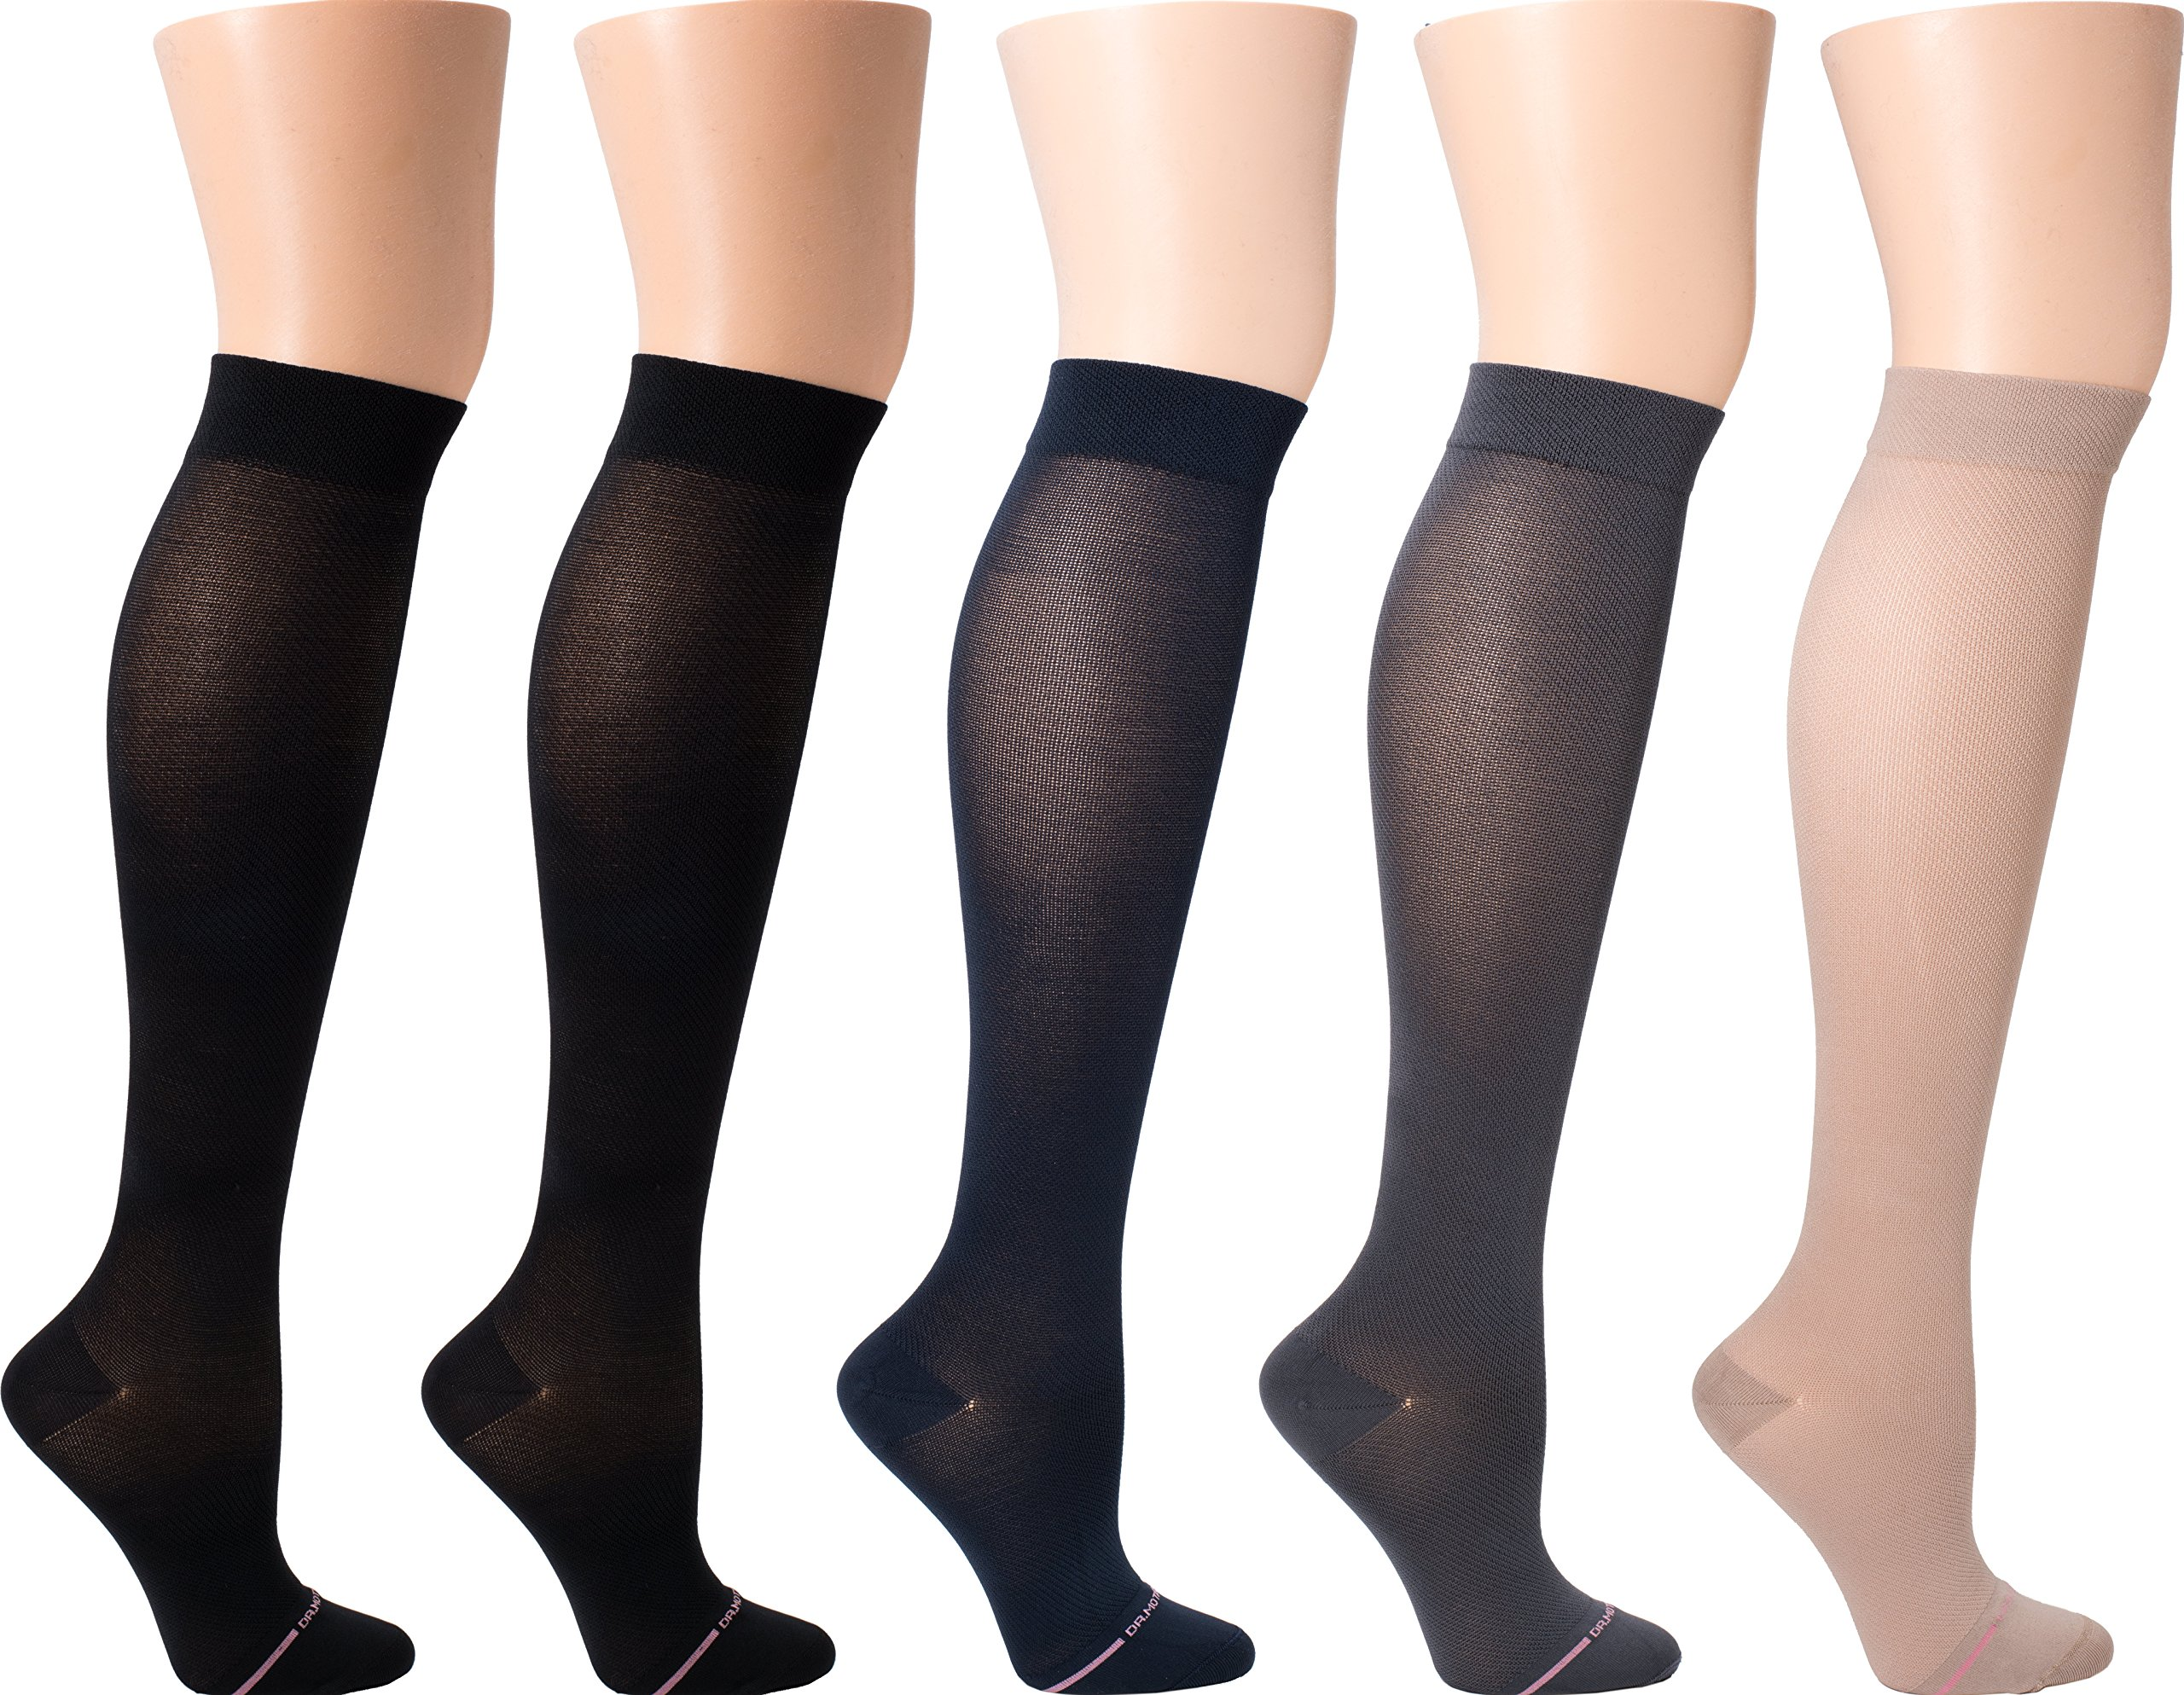 85d301b92 Dr. Motion Women s Compression Ultra Thin Liner Knee High Socks 5 pair pack  (Assorted